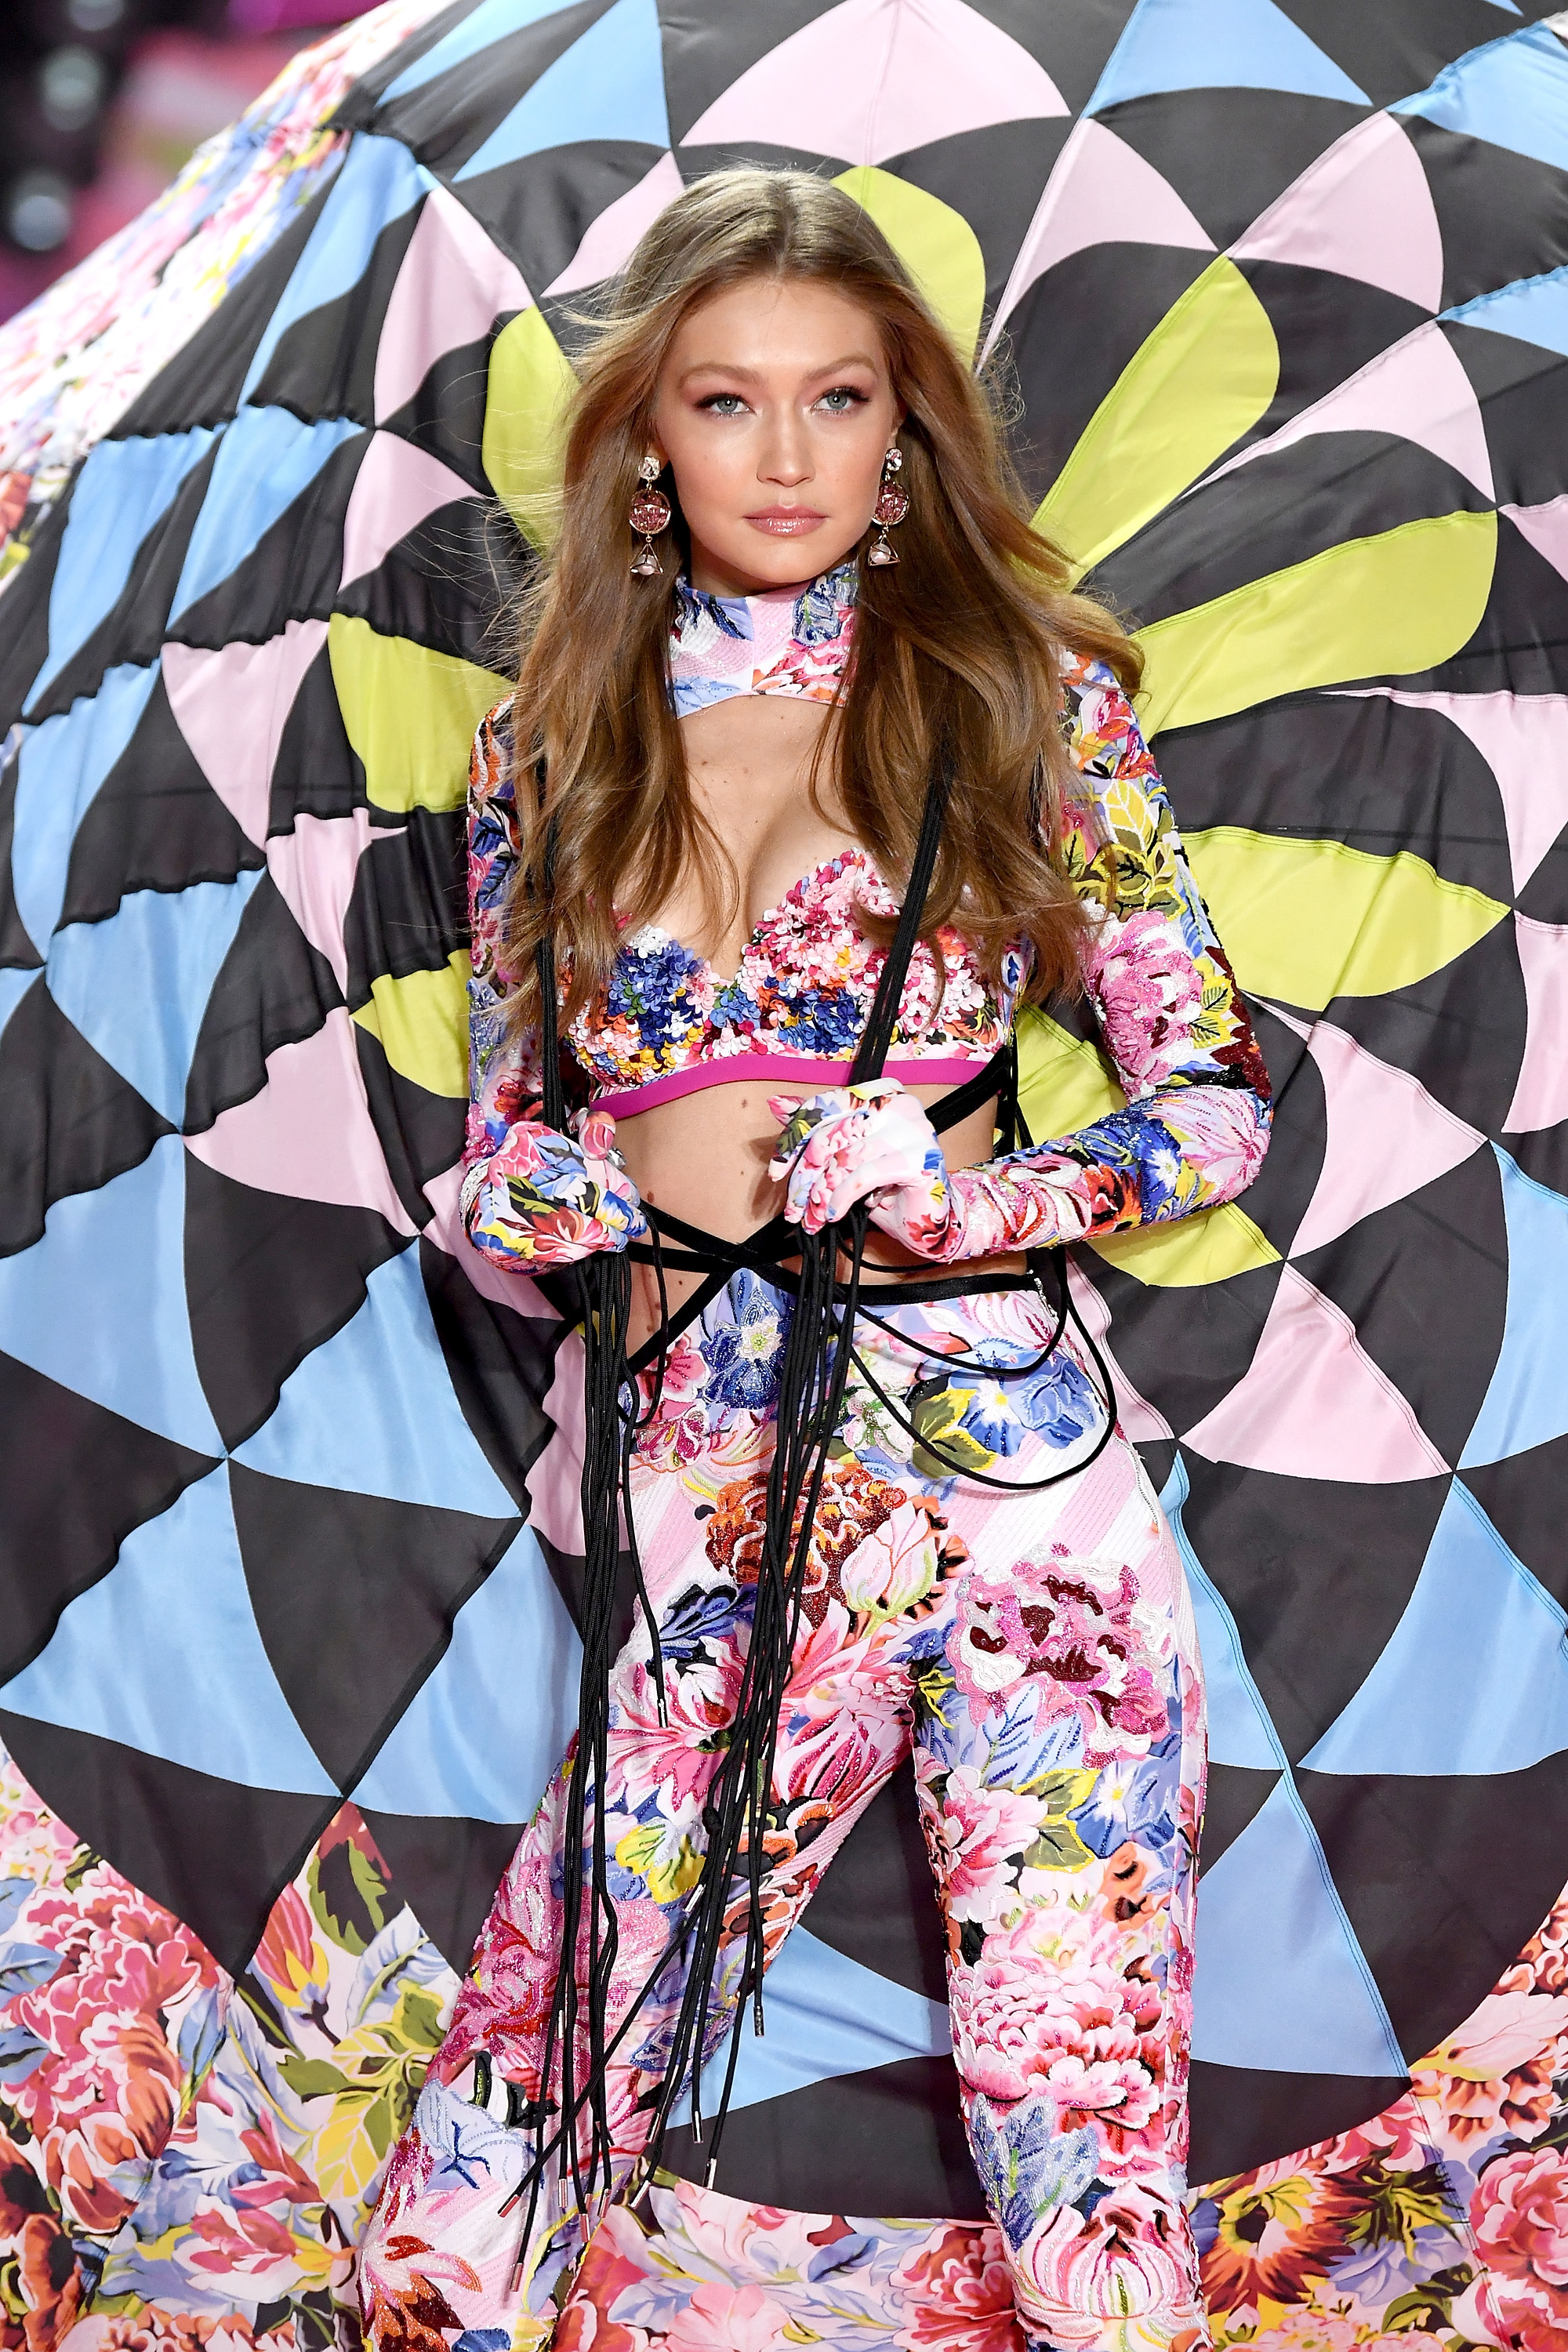 Gigi Hadid walks the runway during the 2018 Victoria's Secret Fashion Show at Pier 94 on November 8, 2018, in New York City. (Getty Images)